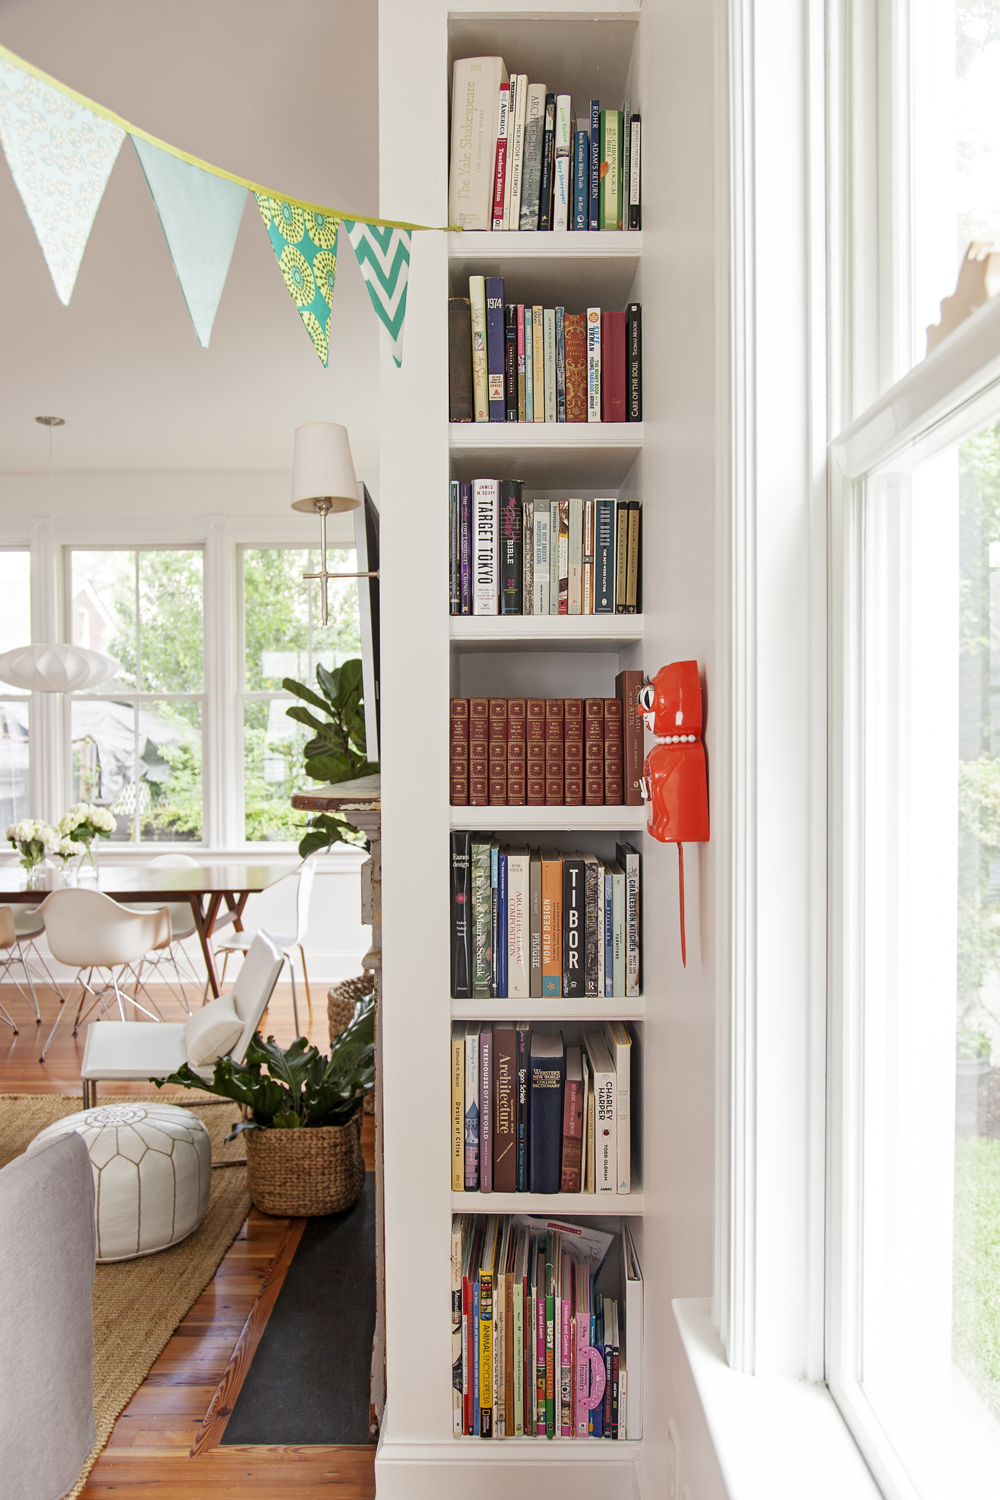 Top Shelf: Built into the side of the fireplace, this bookshelf provides not-quite-hidden storage.